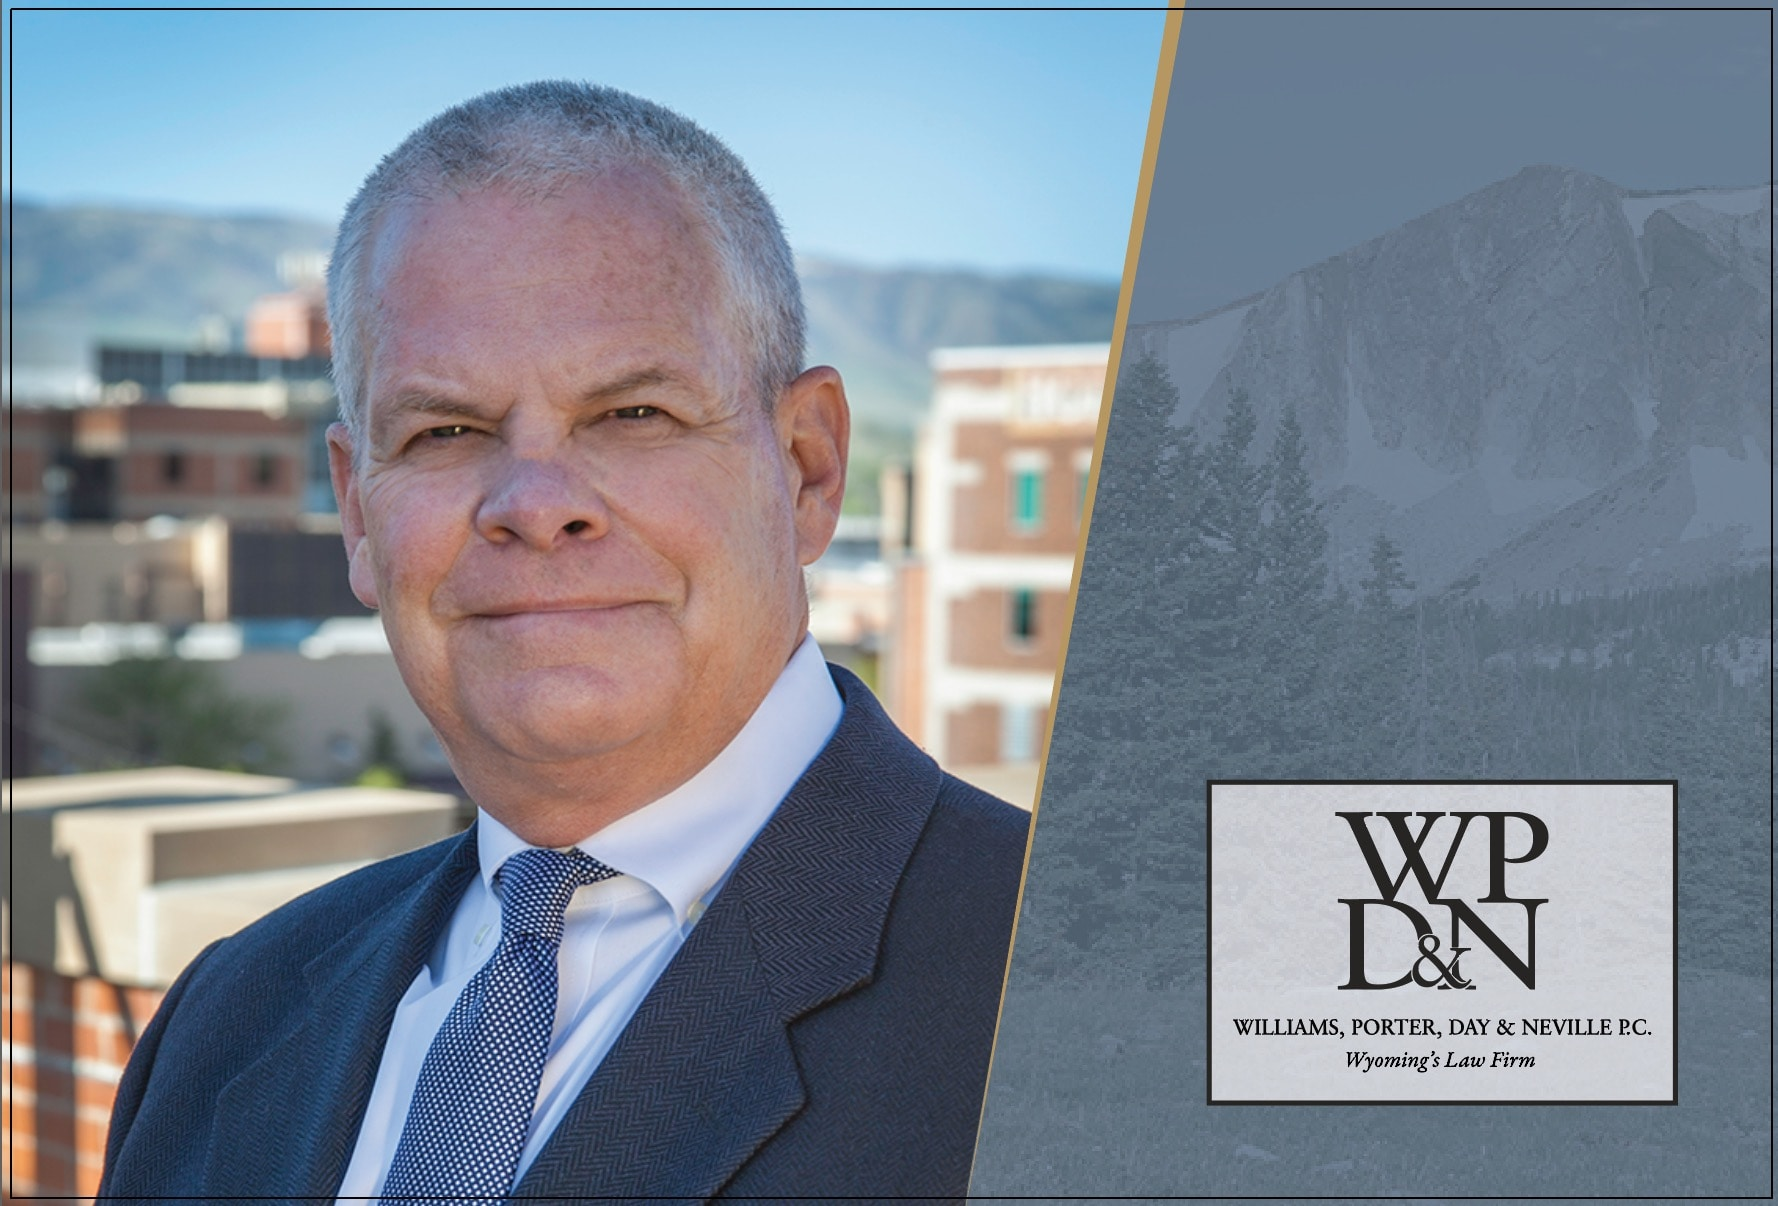 Charlie Chapin is an attorney at Williams, Porter, Day, and Neville